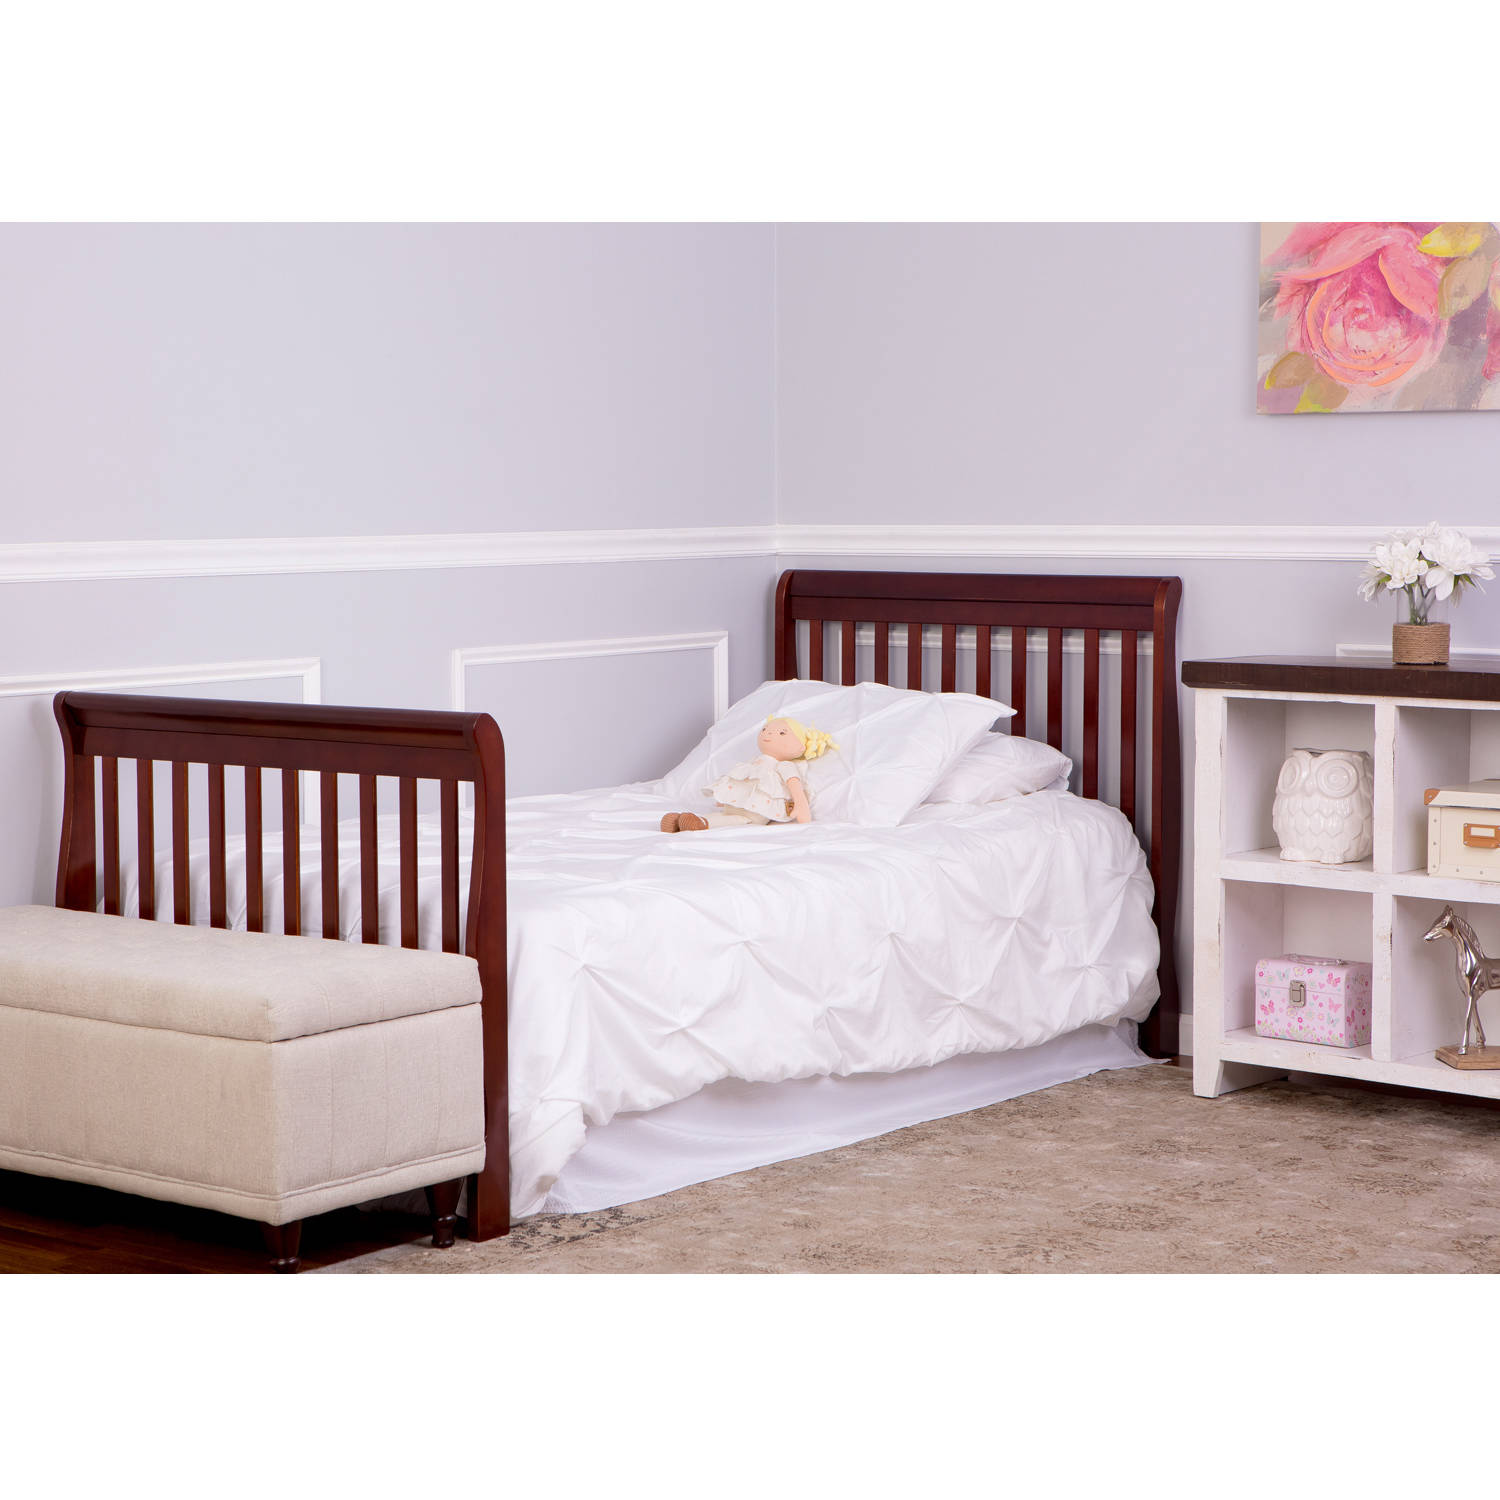 Pali crib for sale used - Dream On Me Aden 4in1 Fixedside Convertible Mini Crib